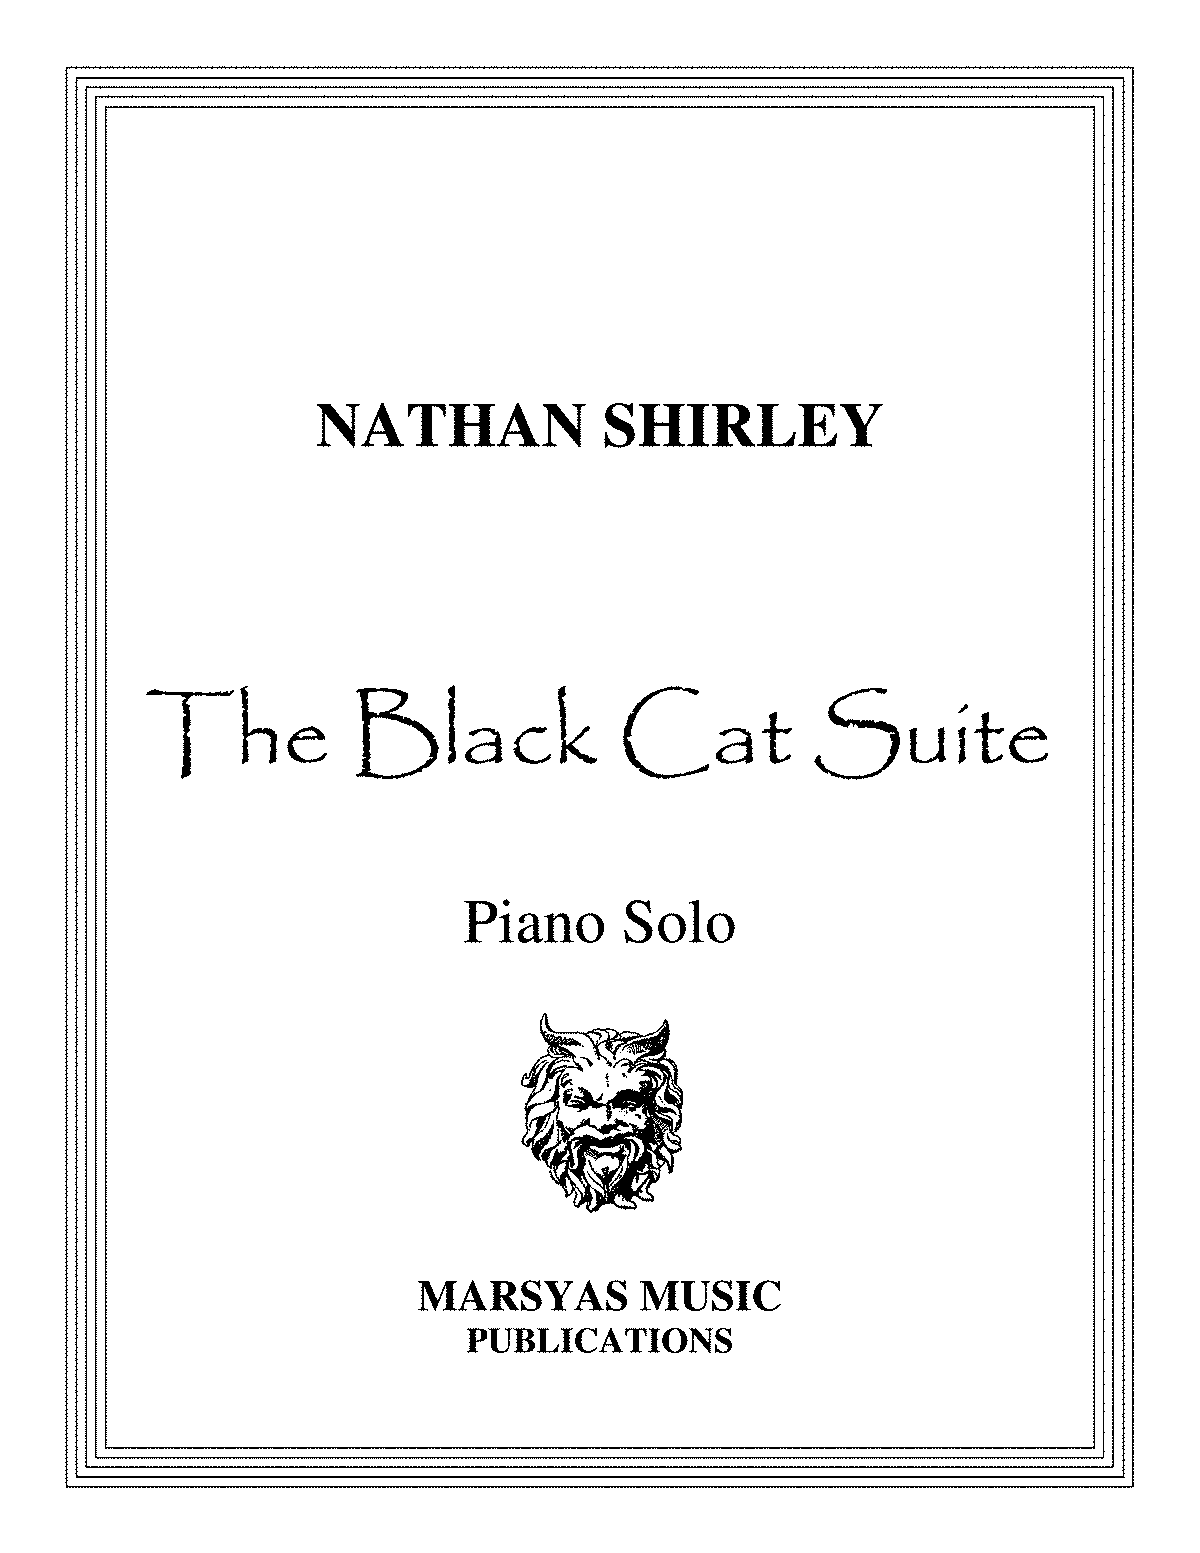 PMLP229001-The Black Cat Suite.pdf